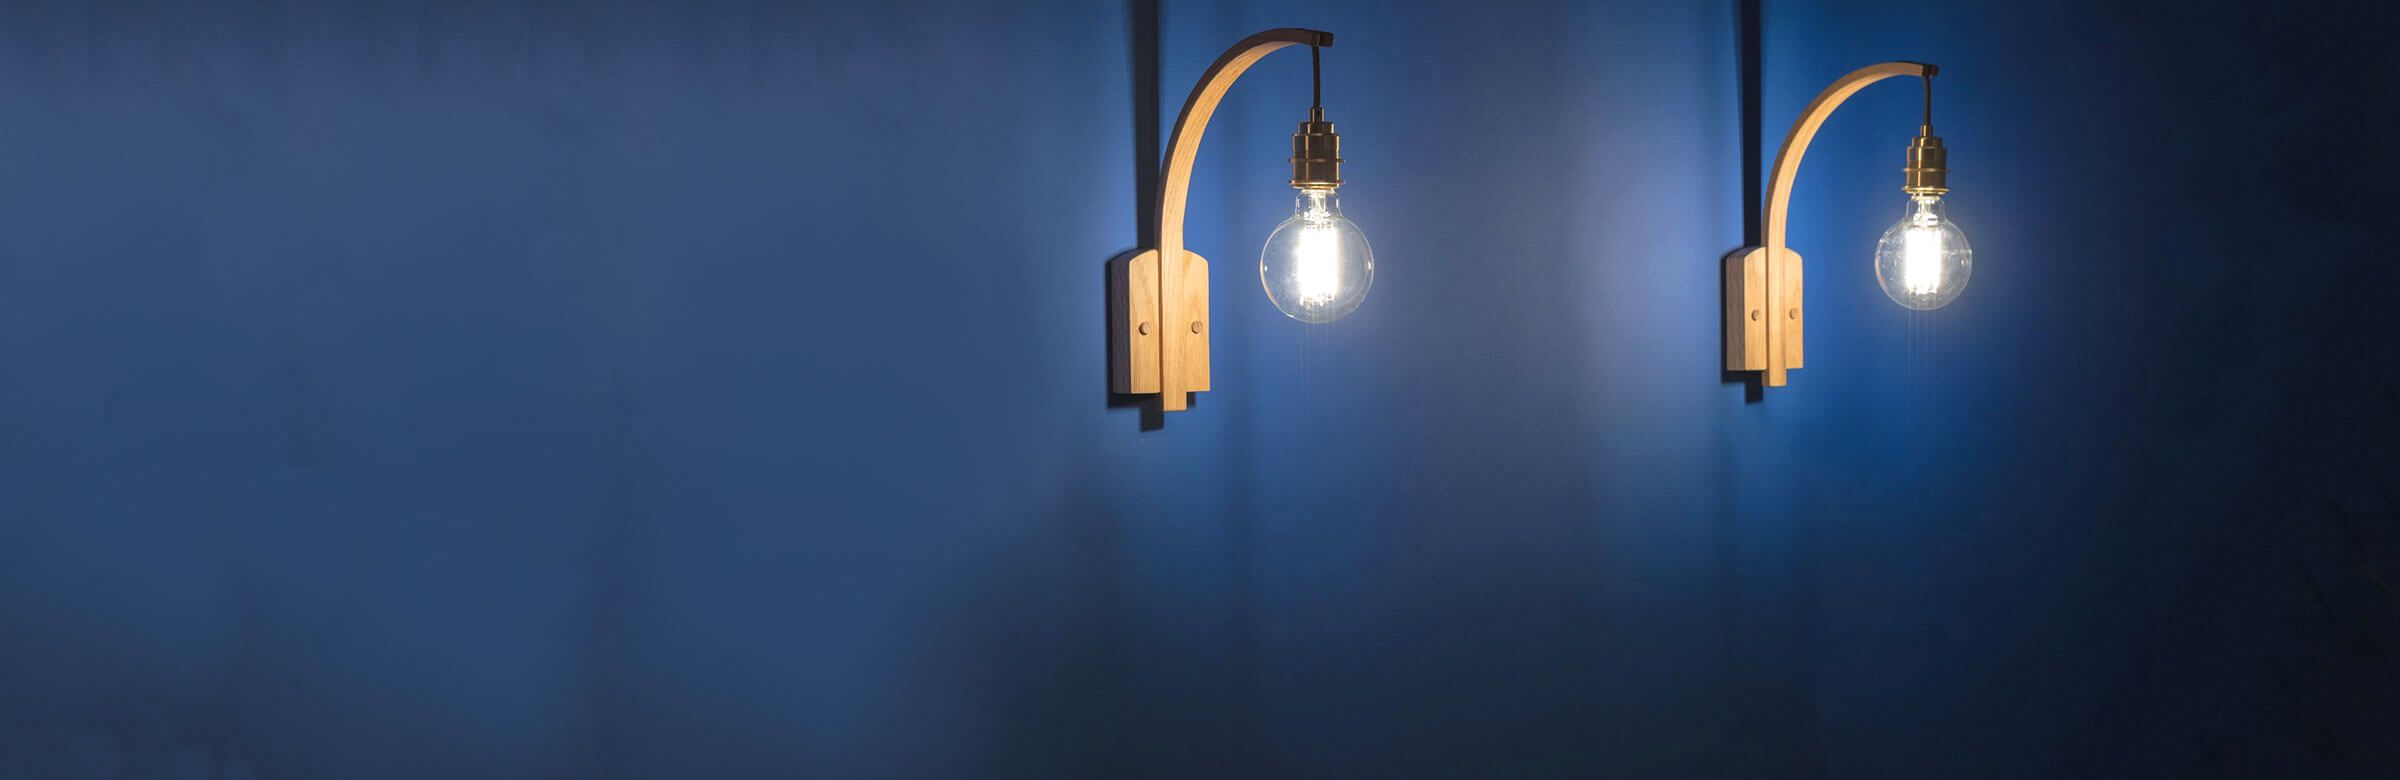 wall lighting light ludia design lights xcellent product